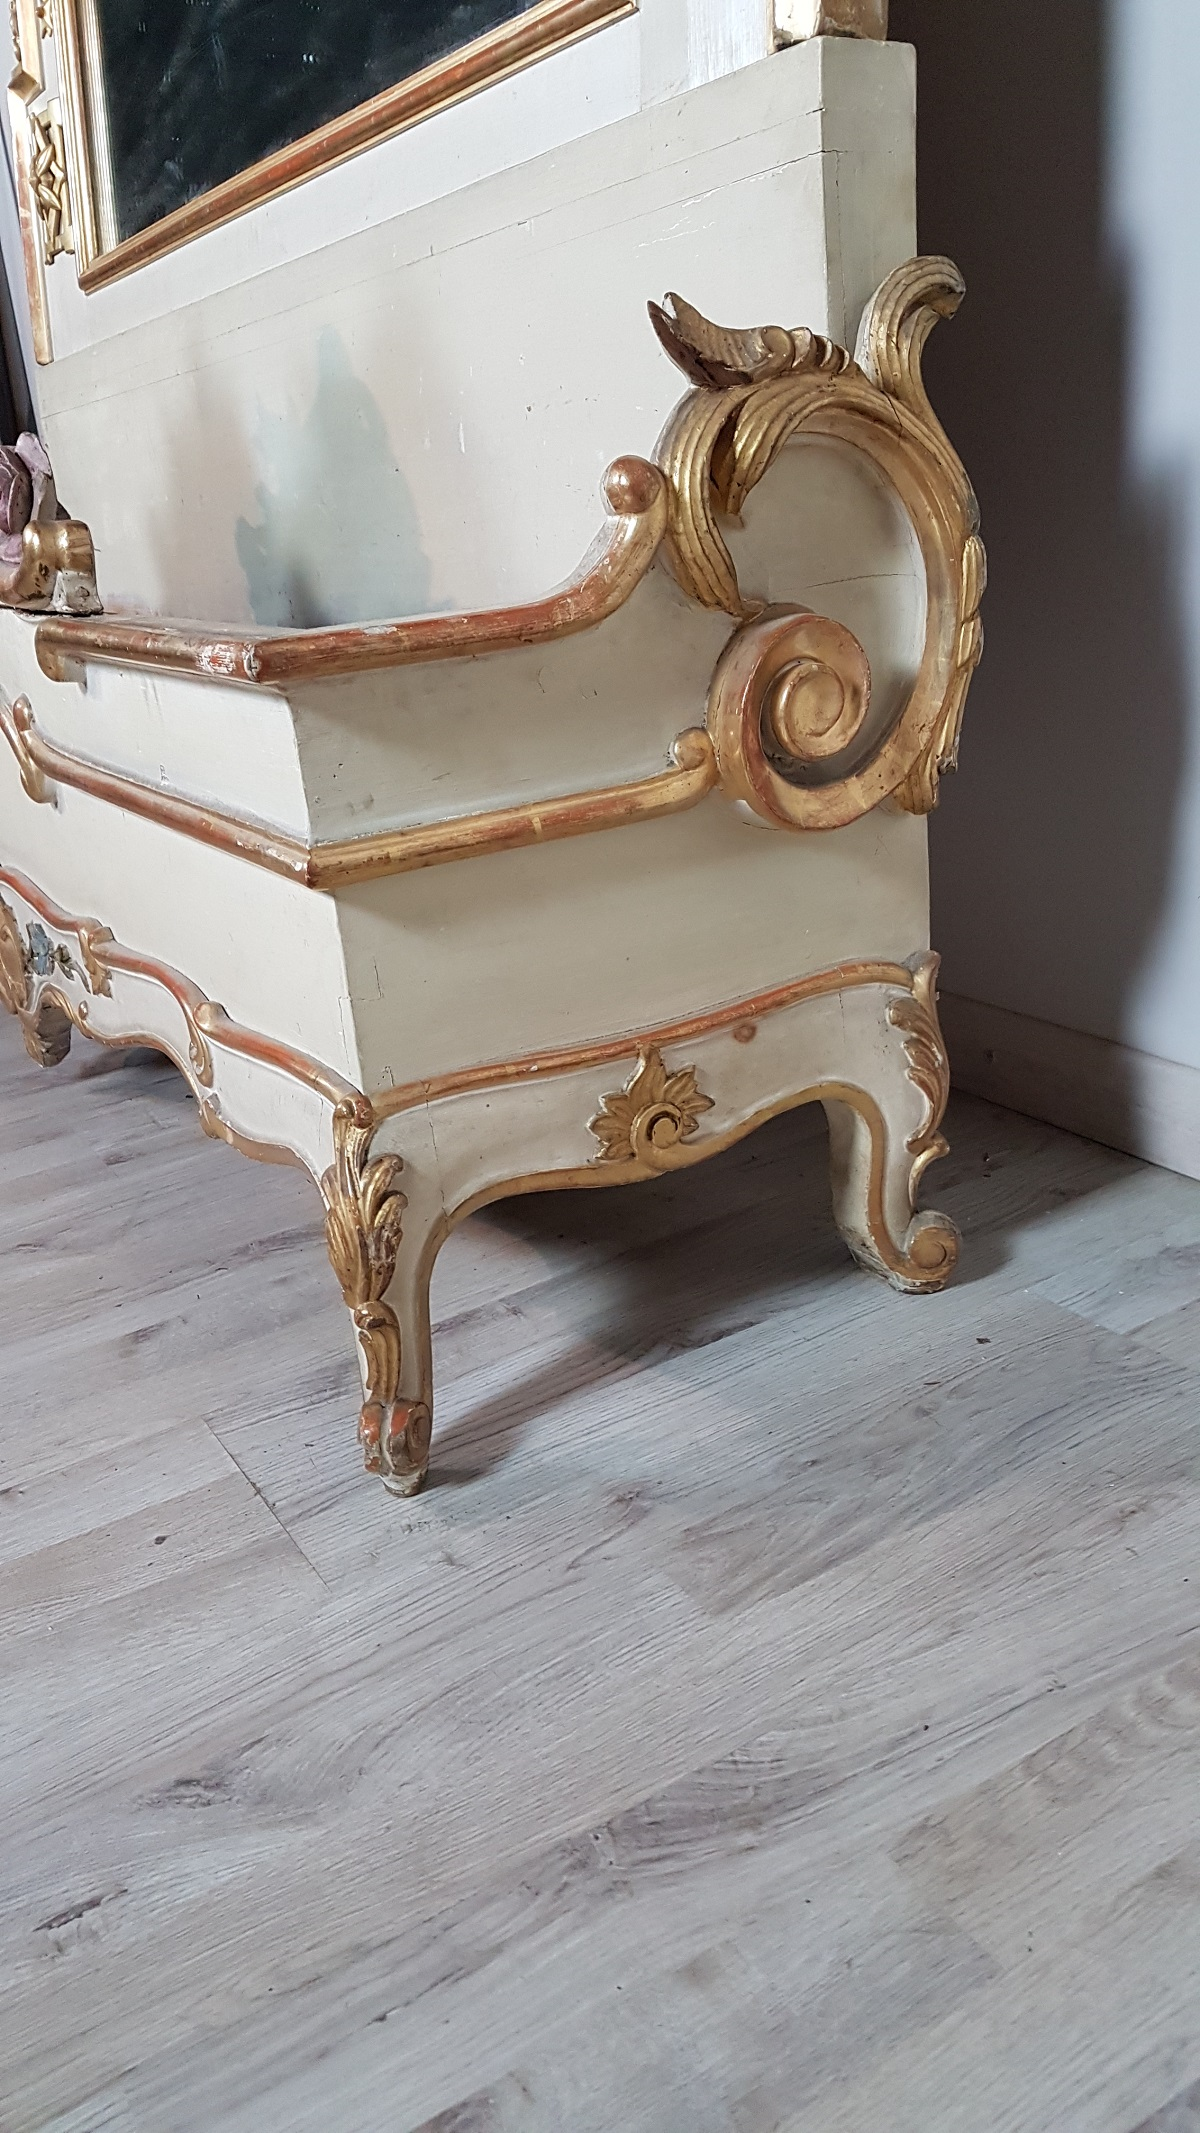 Beautiful Elegant Spectacular Mirror With Planter At The Base Large Size In Perfect Italian Baroque Style Wood Finely And Richly Carved Swirls Of Great